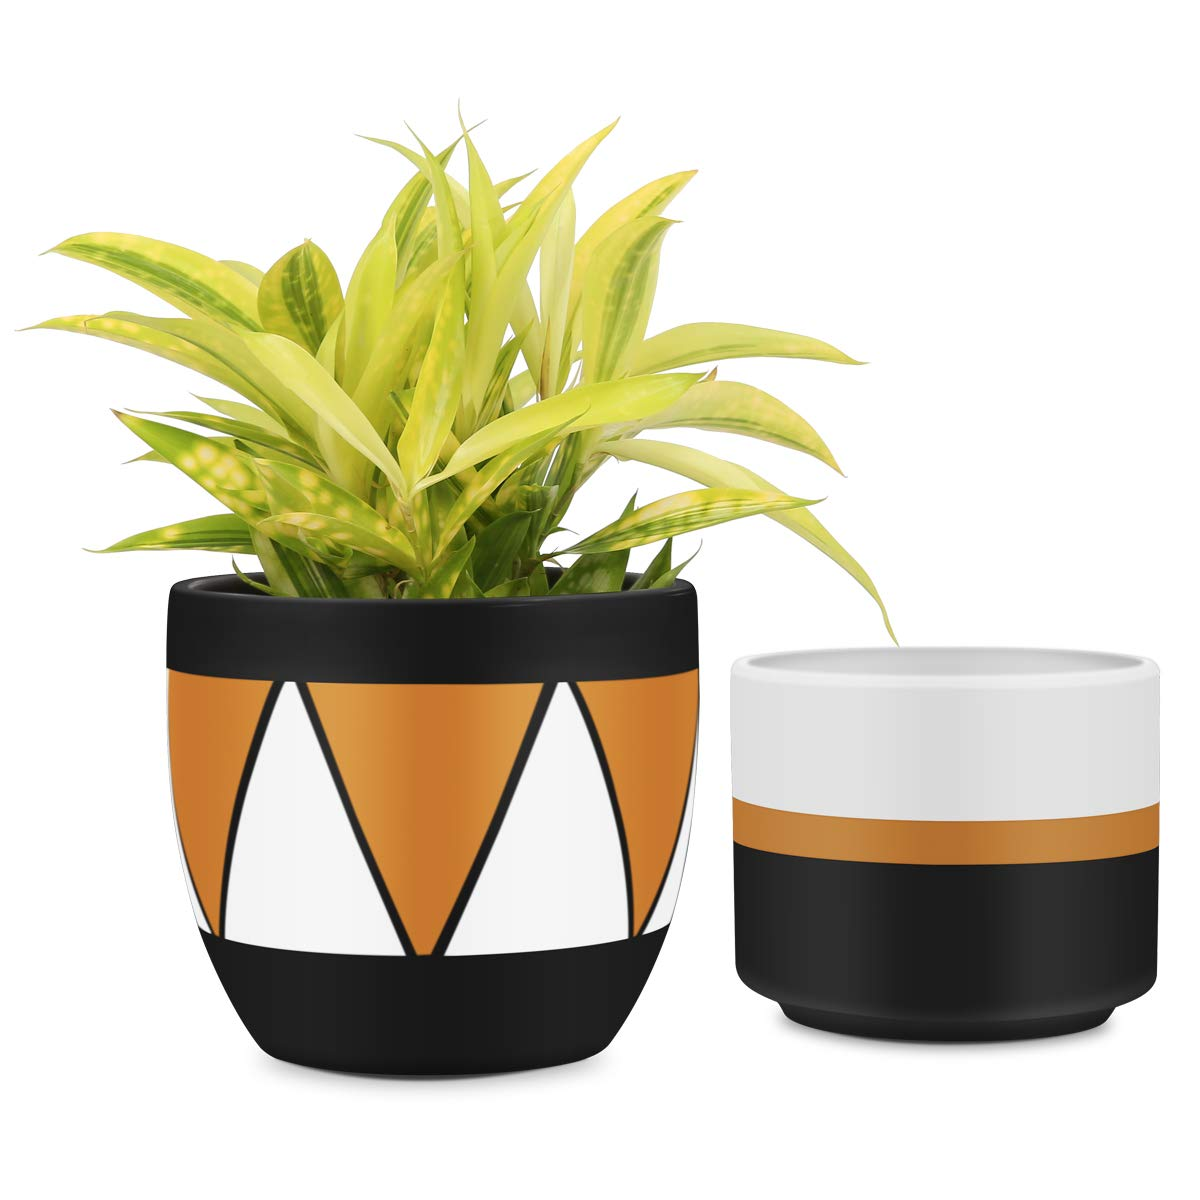 Matte White & Black Ceramic Flower Pot 6 inch Set of 2 Indoor Planters with Drainage Hole Gold Detailing